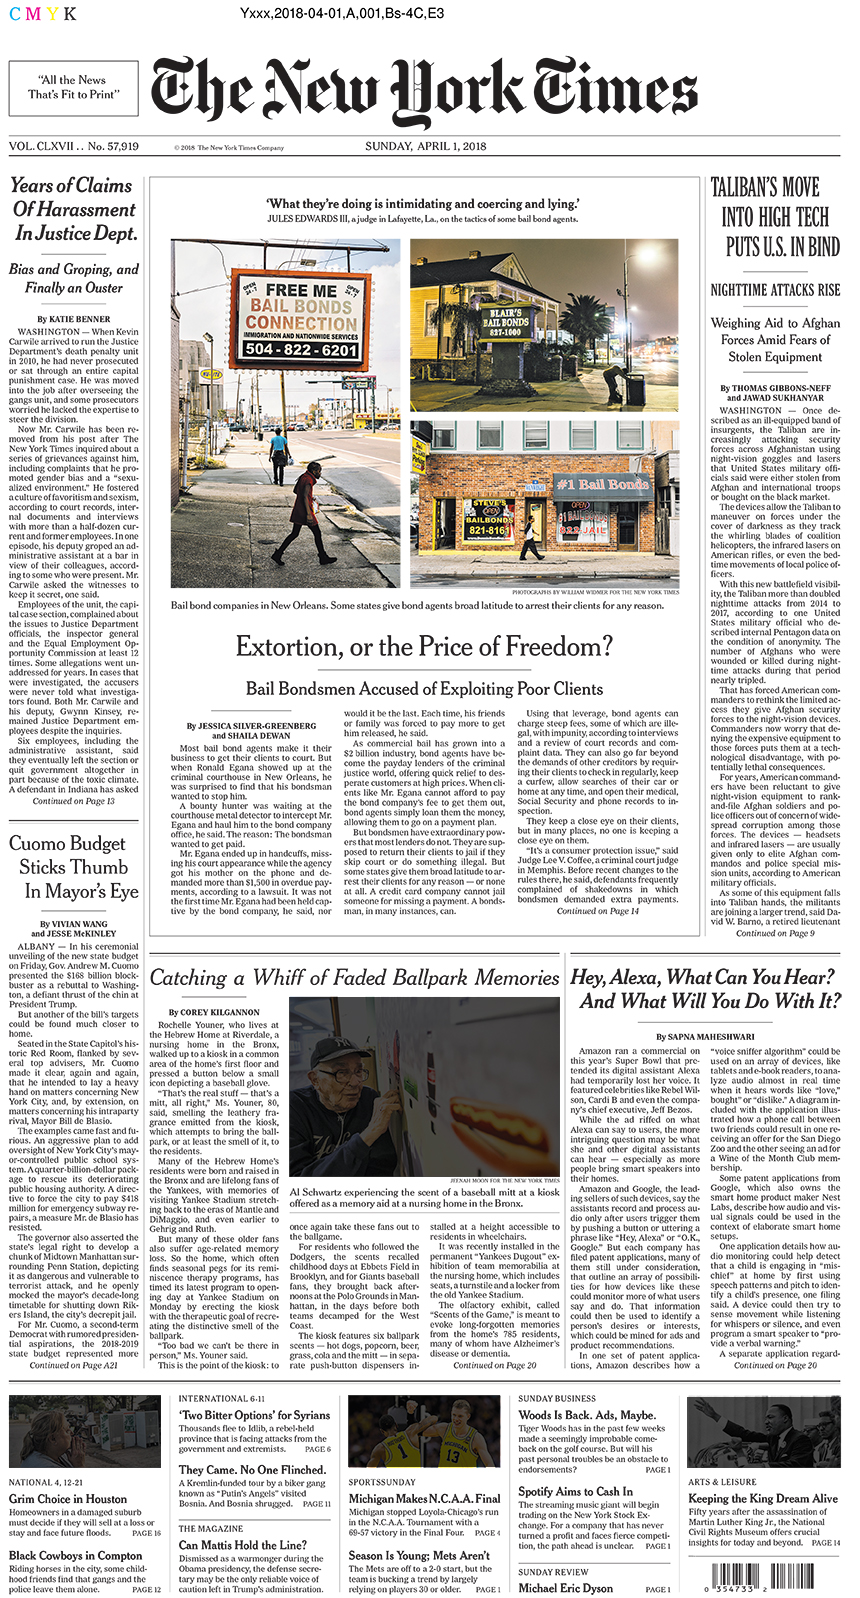 NYT#NYTimes#04-01-2018#National#3#A1#1#201528